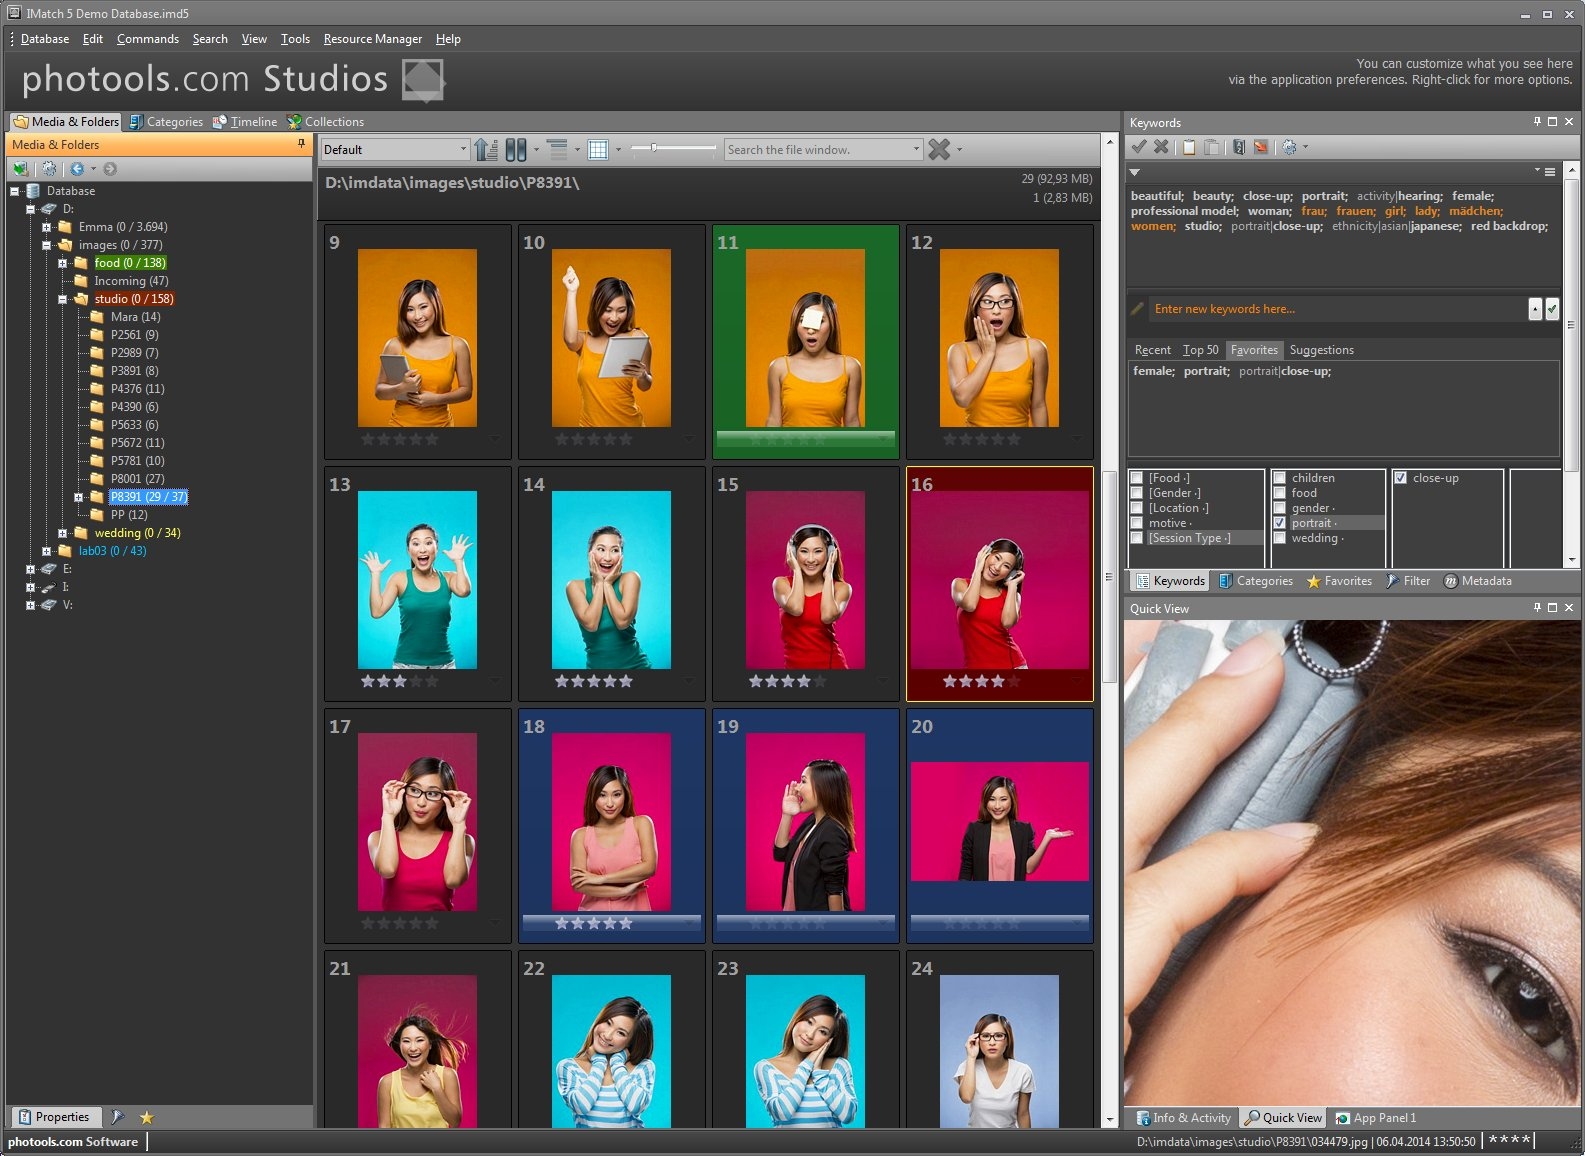 office organizer software. imatch organize your digital images and other media files easily office organizer software